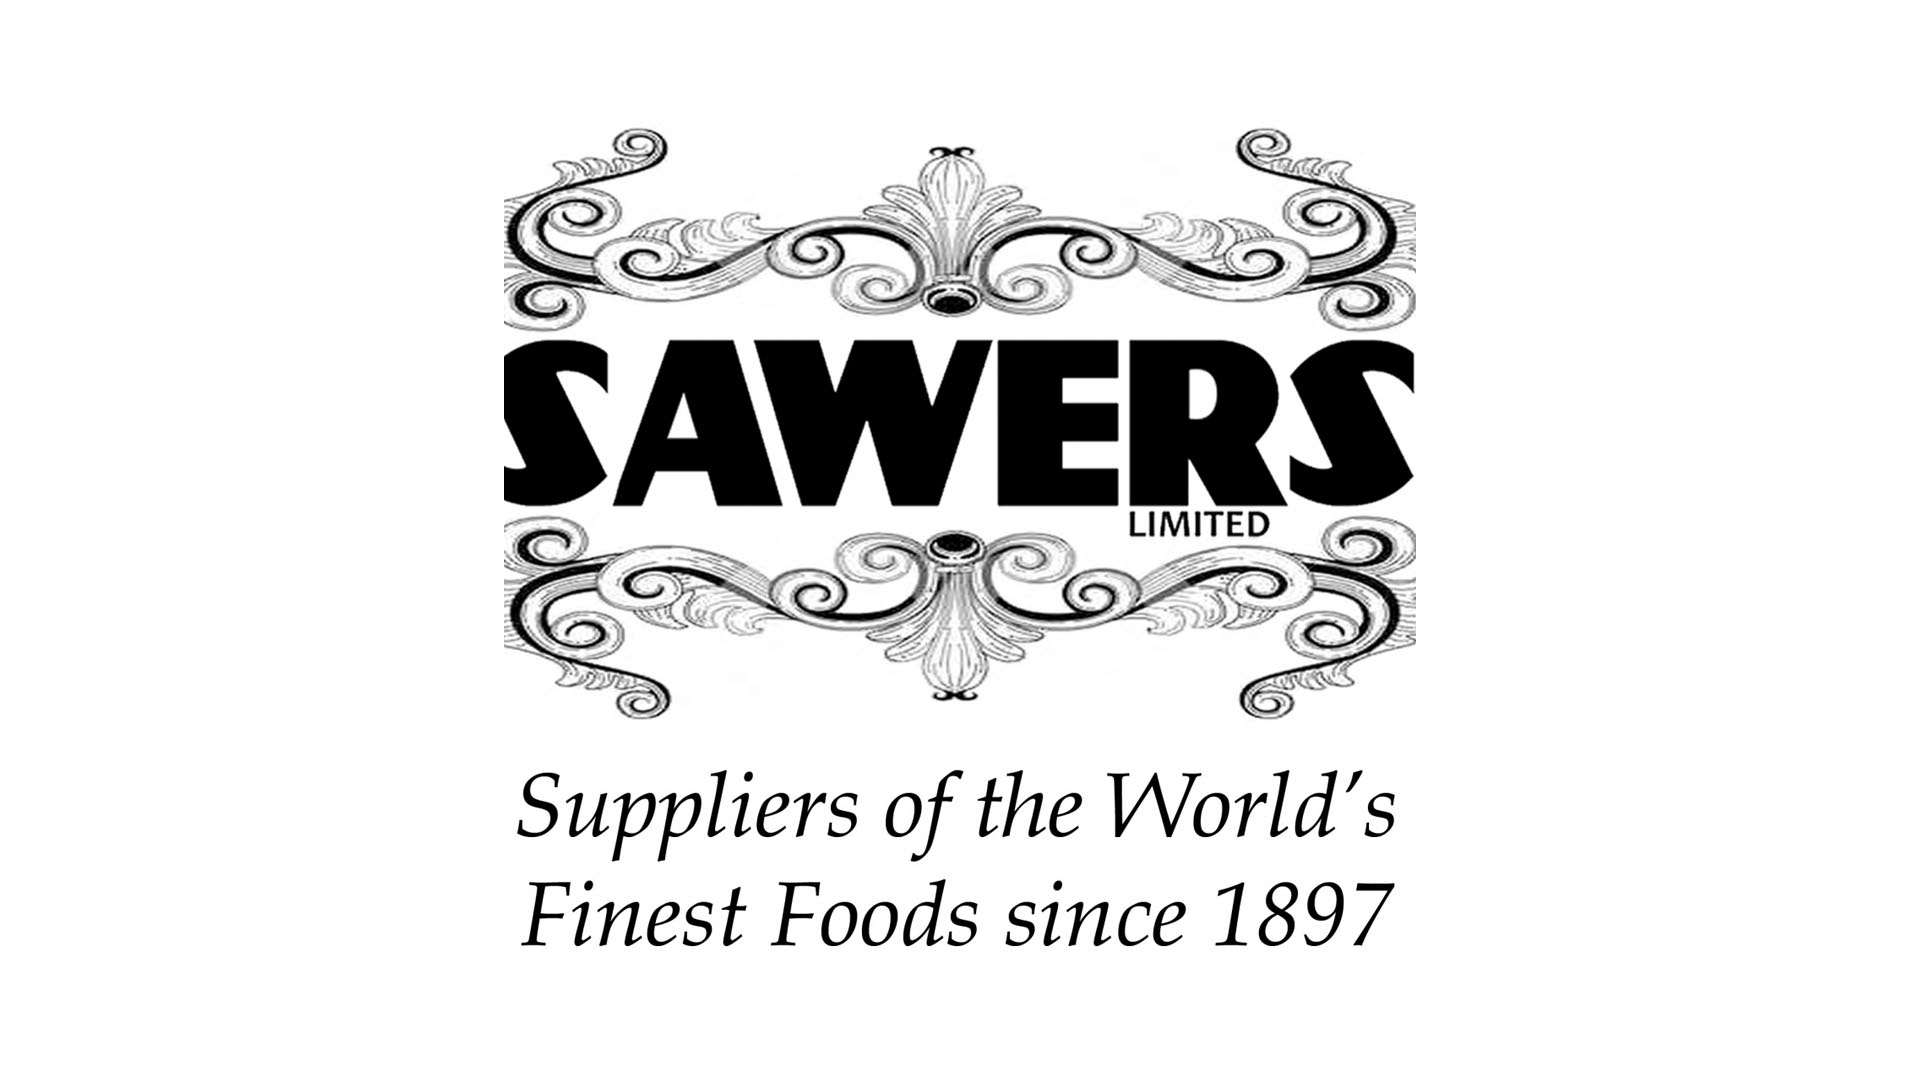 Sawers is a family business established in 1897 that has always prided itself on stocking an extensive range of quality foods. Described as an Aladdin's Cave of culinary delights, Sawers is as famous in Belfast as the Titanic and in fact supplied the R.M.S. Titanic with olives, cheese and more for it's onboard functions. With our extensive range of over 200 cheeses you're sure to find what you're looking for. We only import the best, from all the classics from around the world to local artisan producers right here in Northern Ireland. Our seafood counter is like no other. As well as bringing you the finest cuts of fresh fish including Cod, Salmon, Herring, Monkfish and Seabass. We also offer a wide selection of cooked seafood ranging from local delicacies to the finest Italian